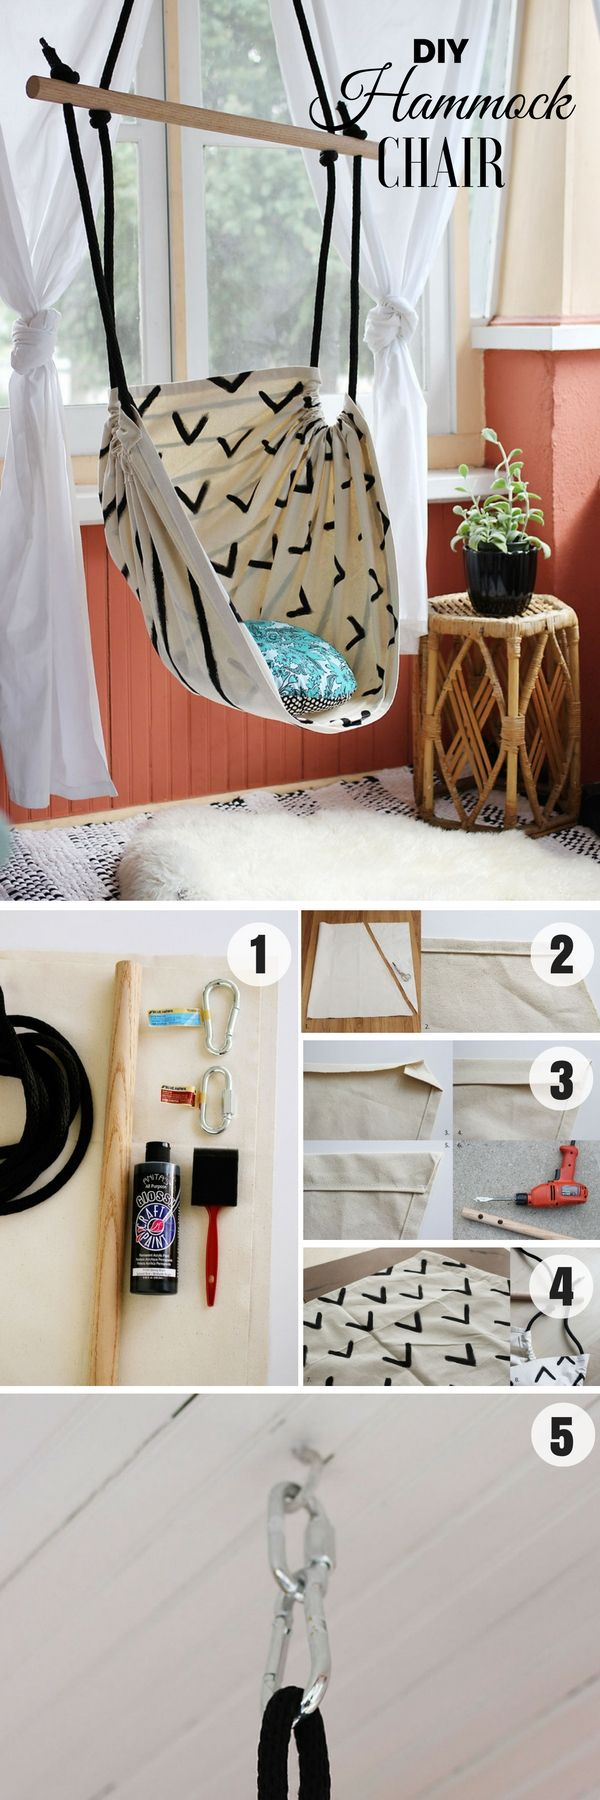 Best 25 bedroom hammock ideas on pinterest hammock chair for bedroom hammock in bedroom and - How to decorate simple room ...